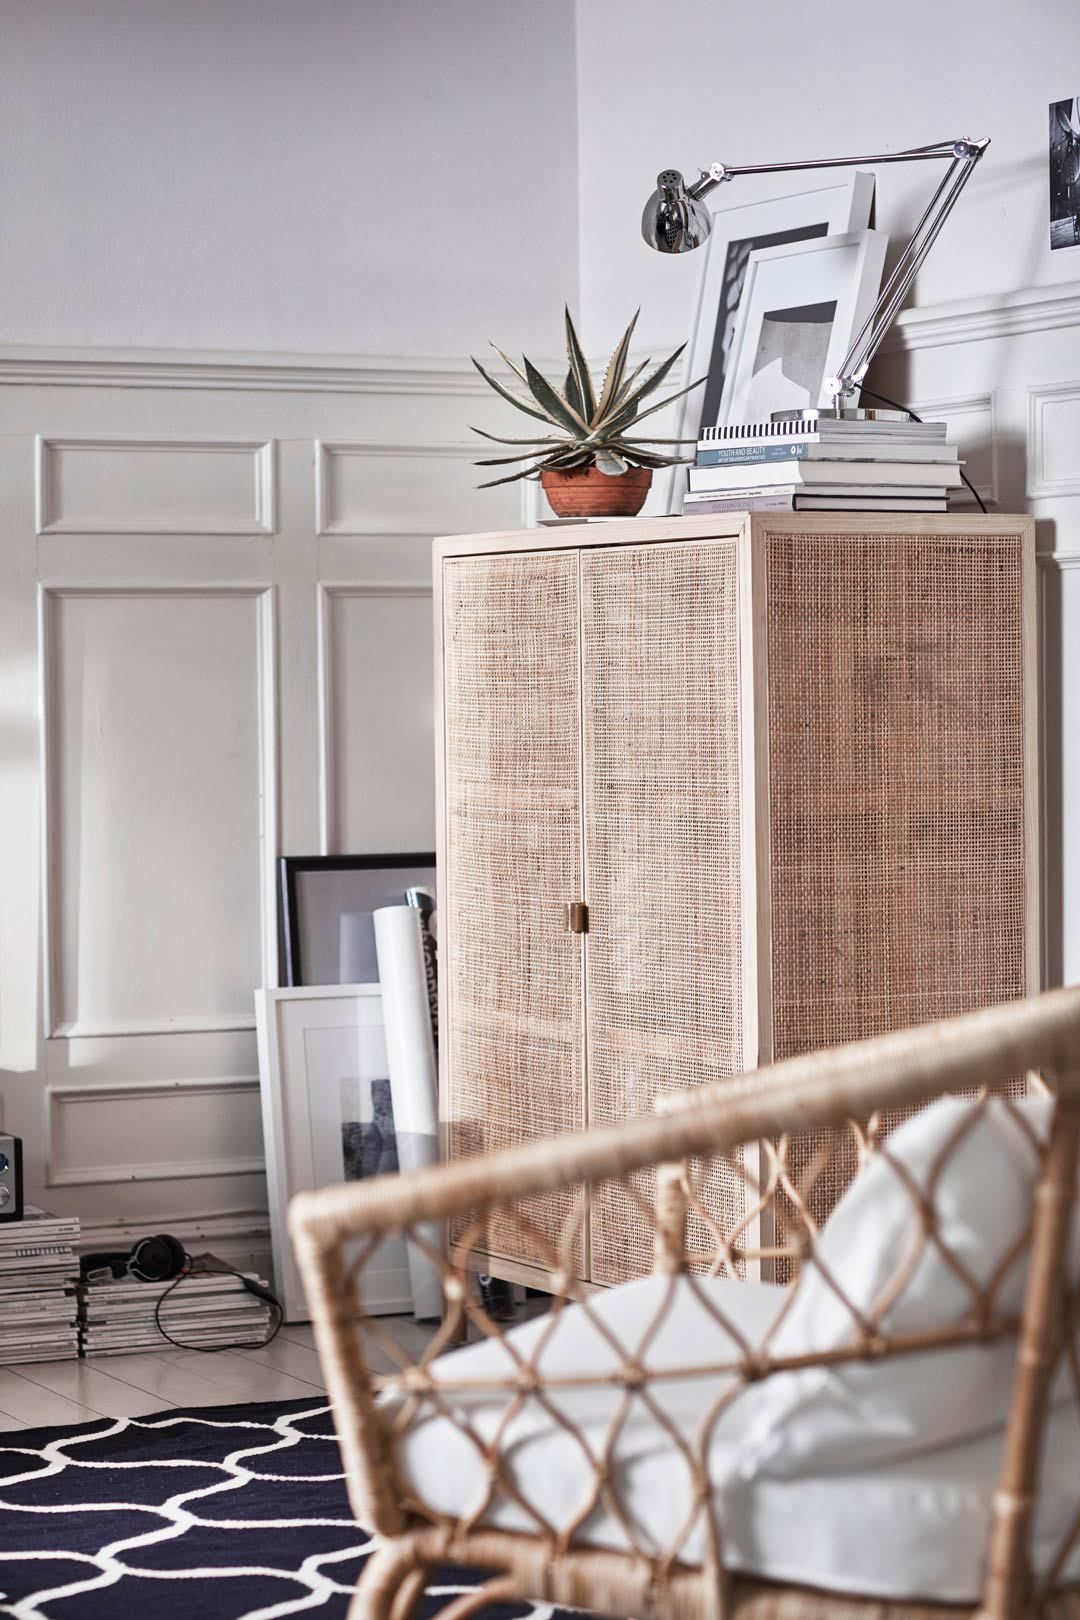 Ikea Stockholm 2017 Collection Via That Nordic Feeling Interior House Interior Ikea Stockholm